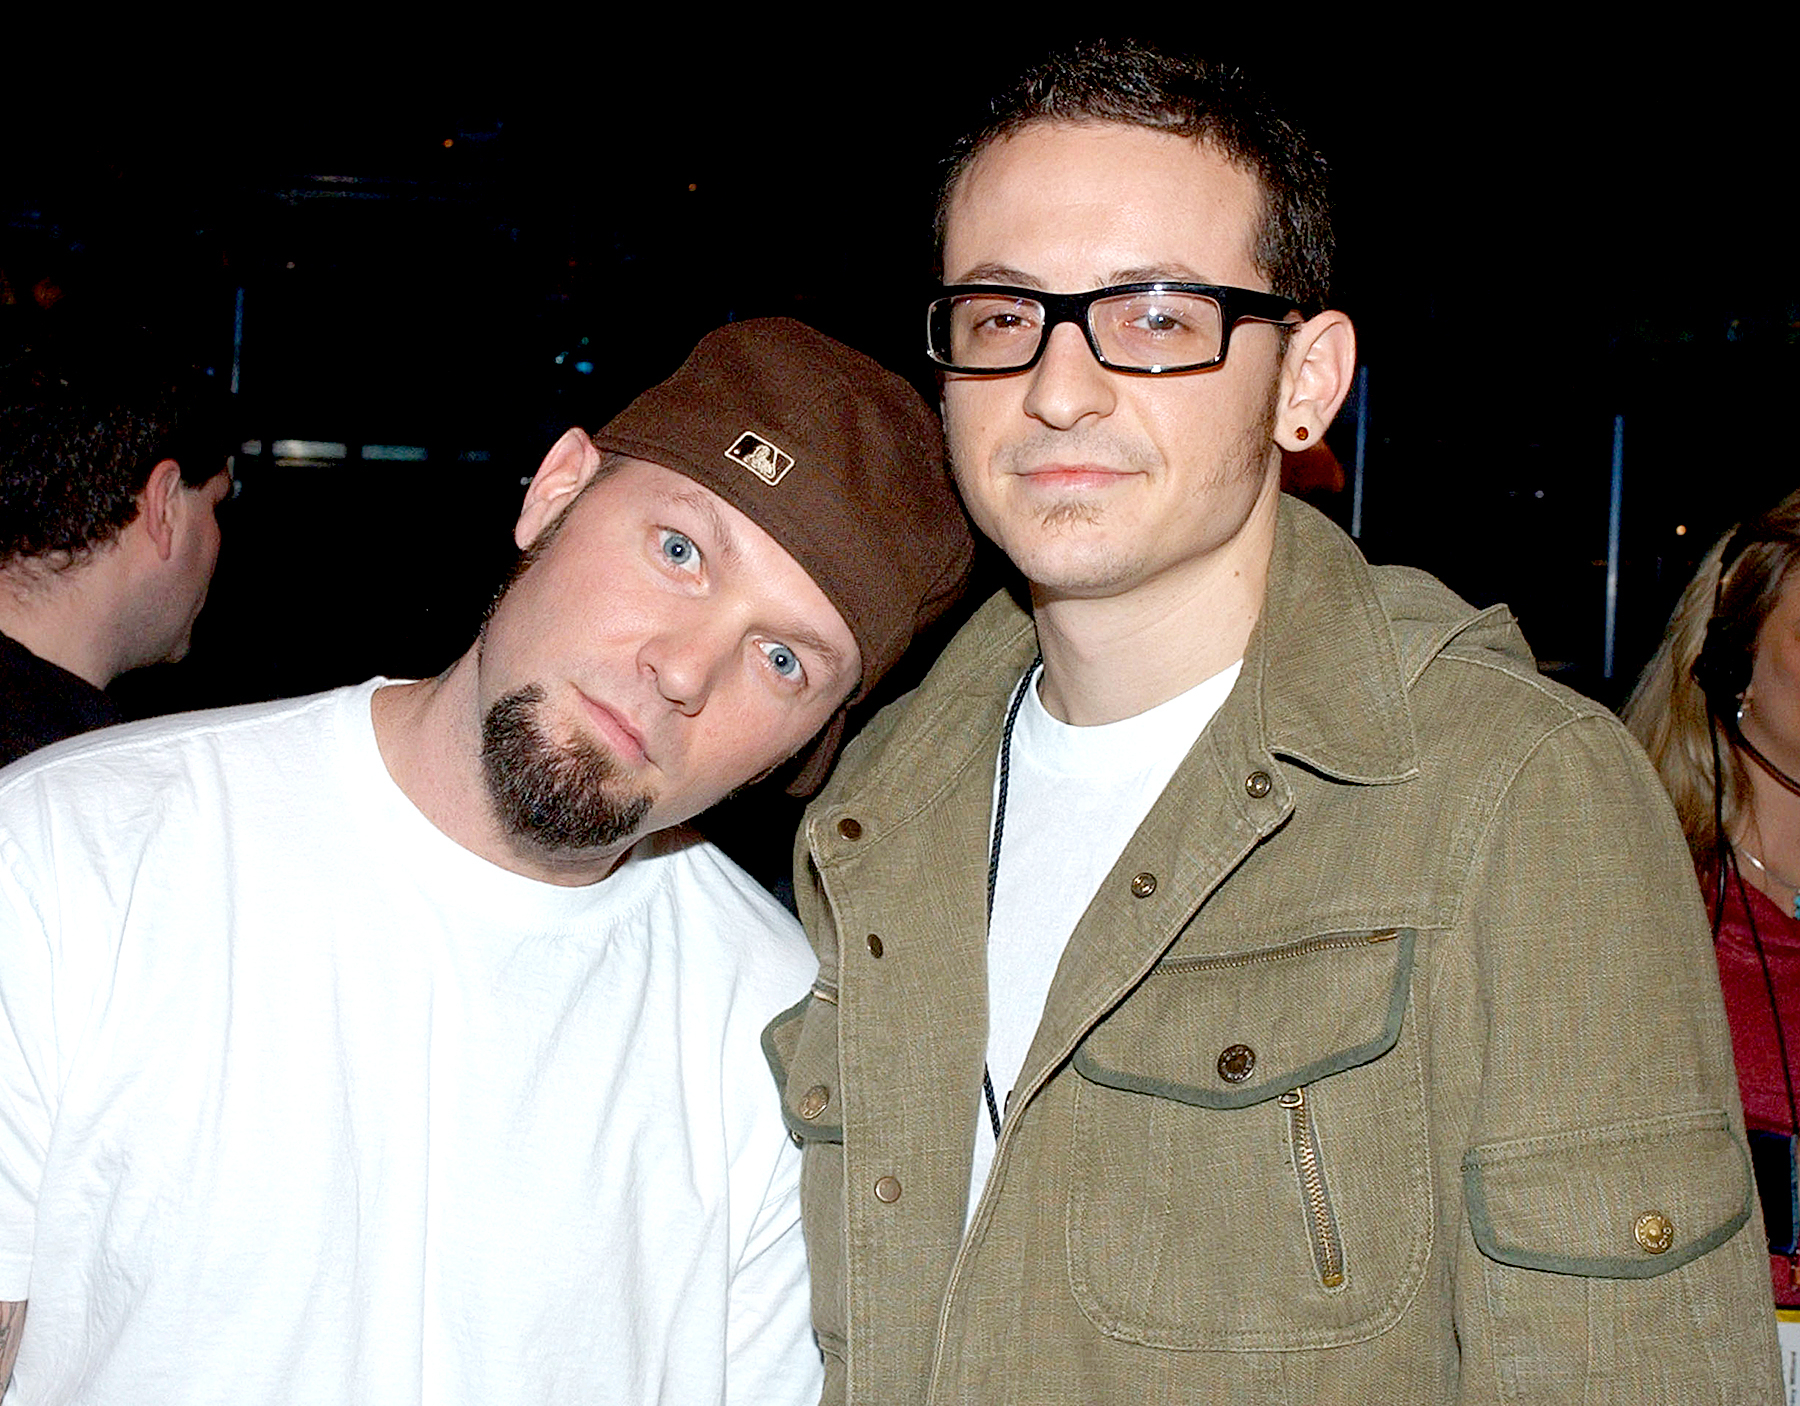 Fred Durst and Chester Bennington in 2003.